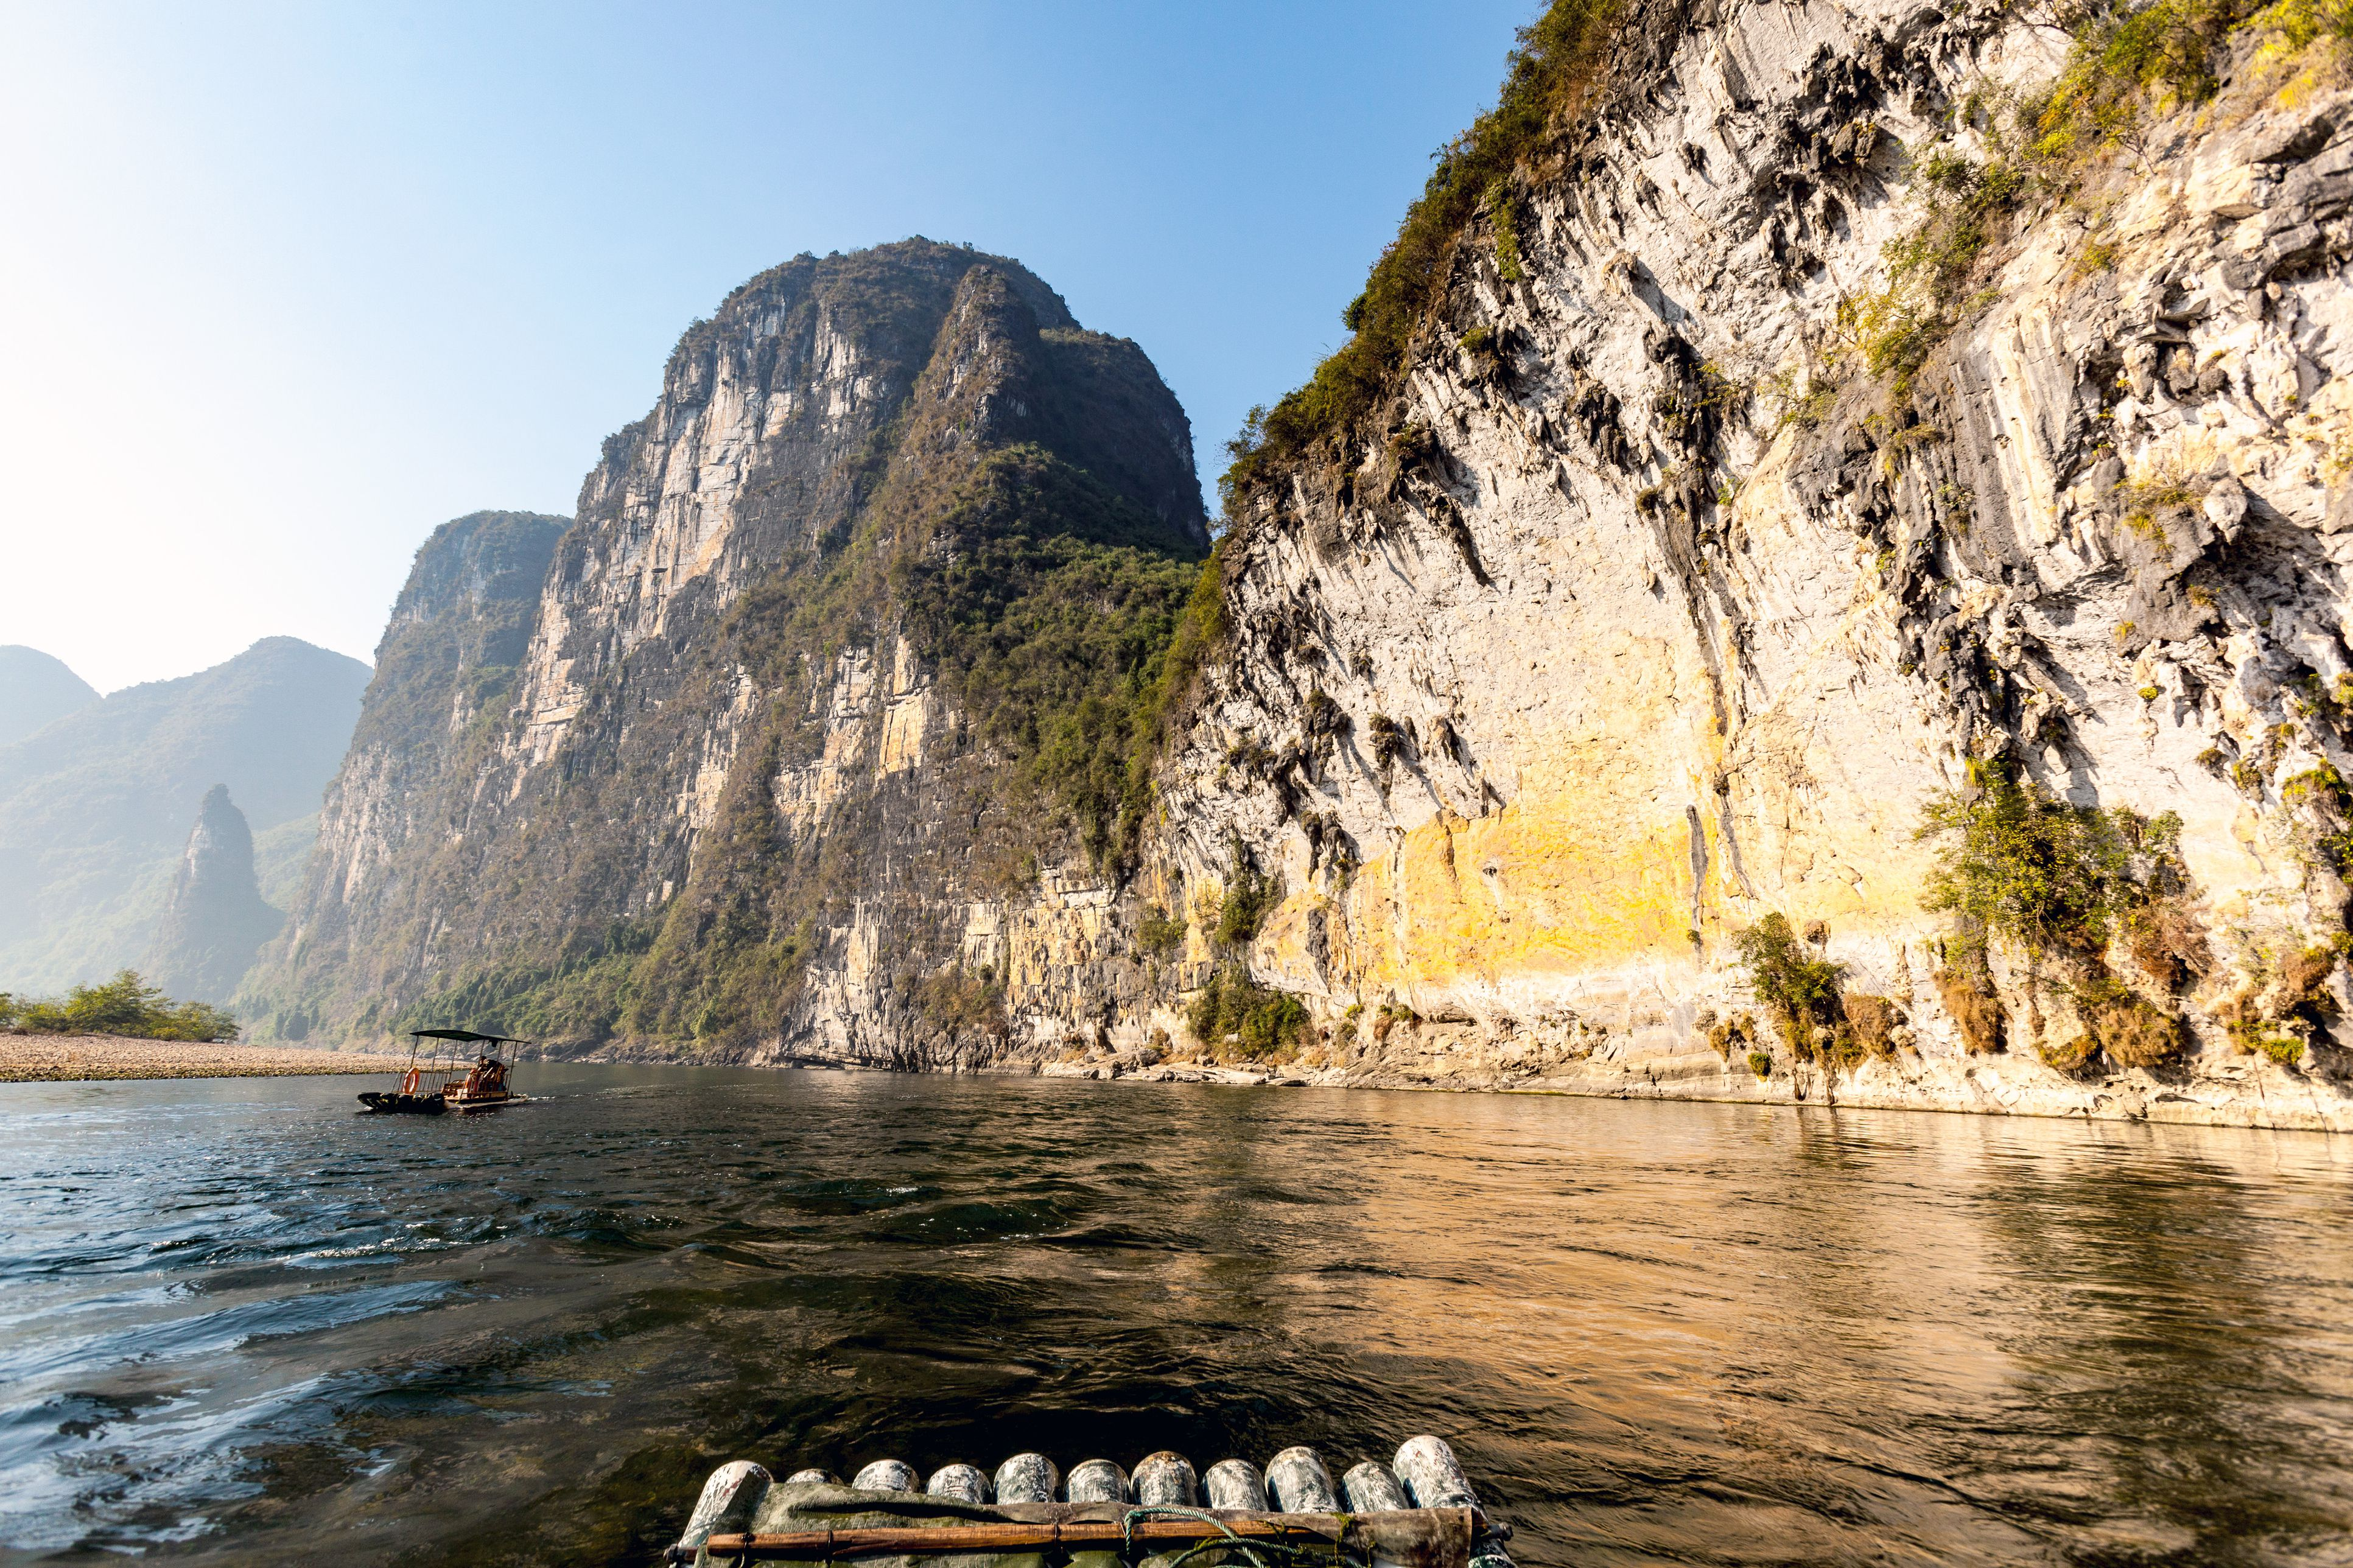 Morning on the Li River with rock formations in the back